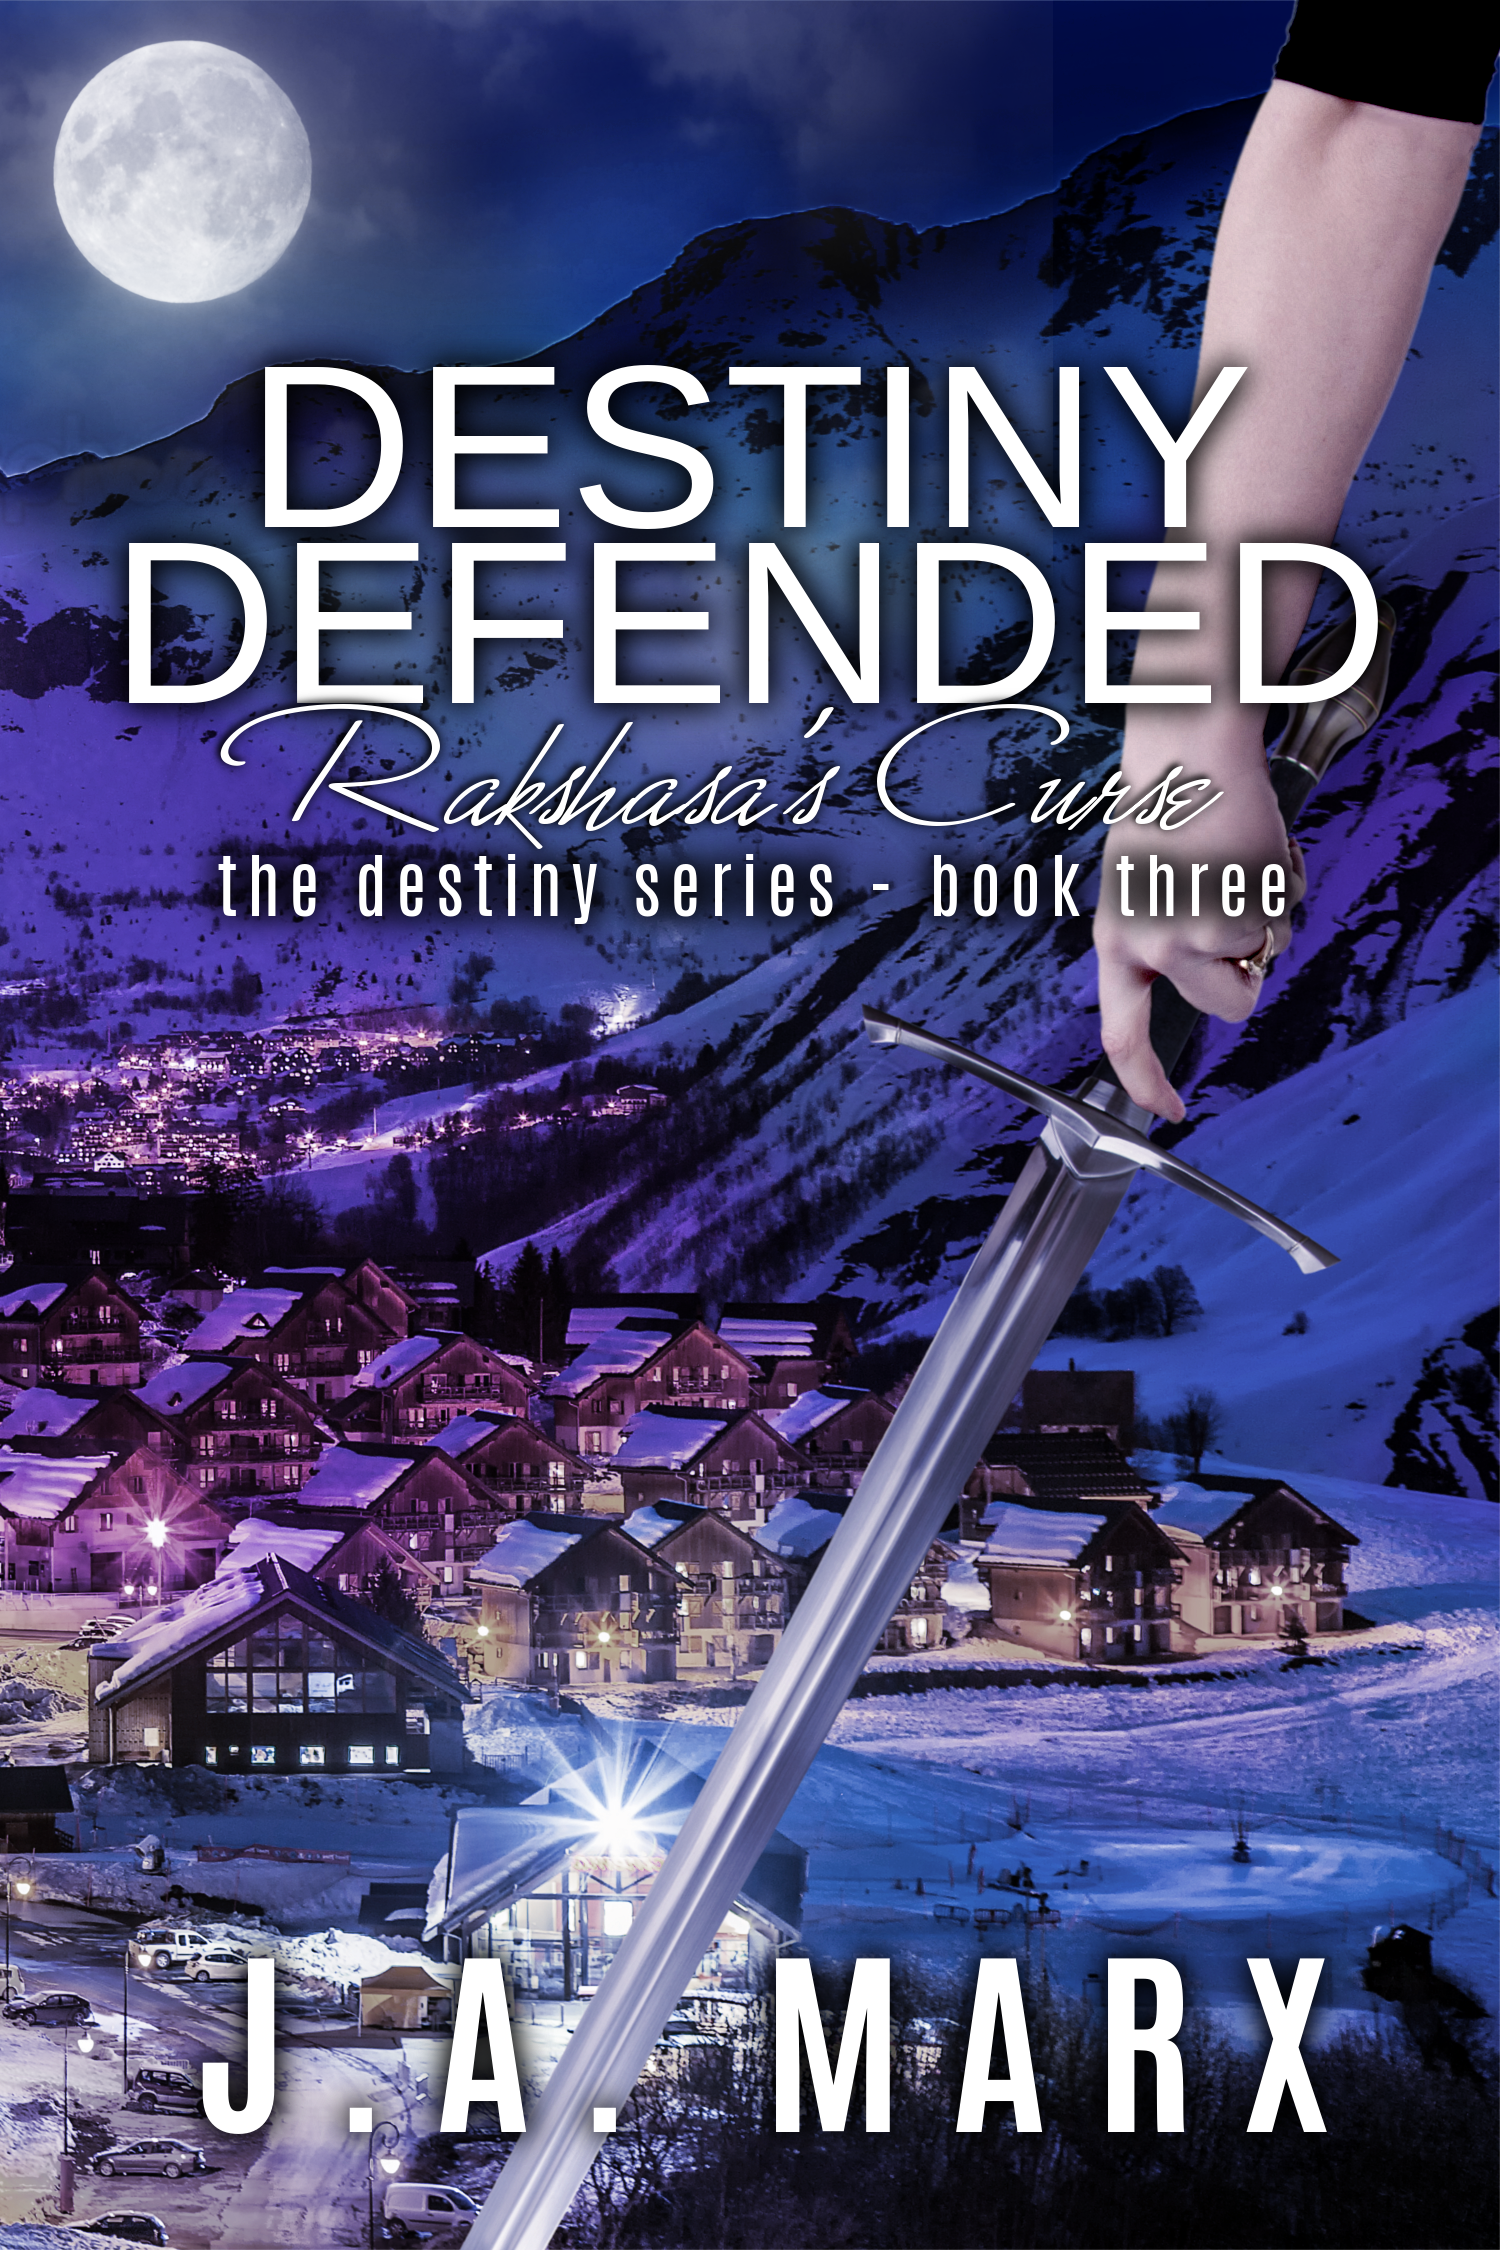 Destiny Defended, book 3